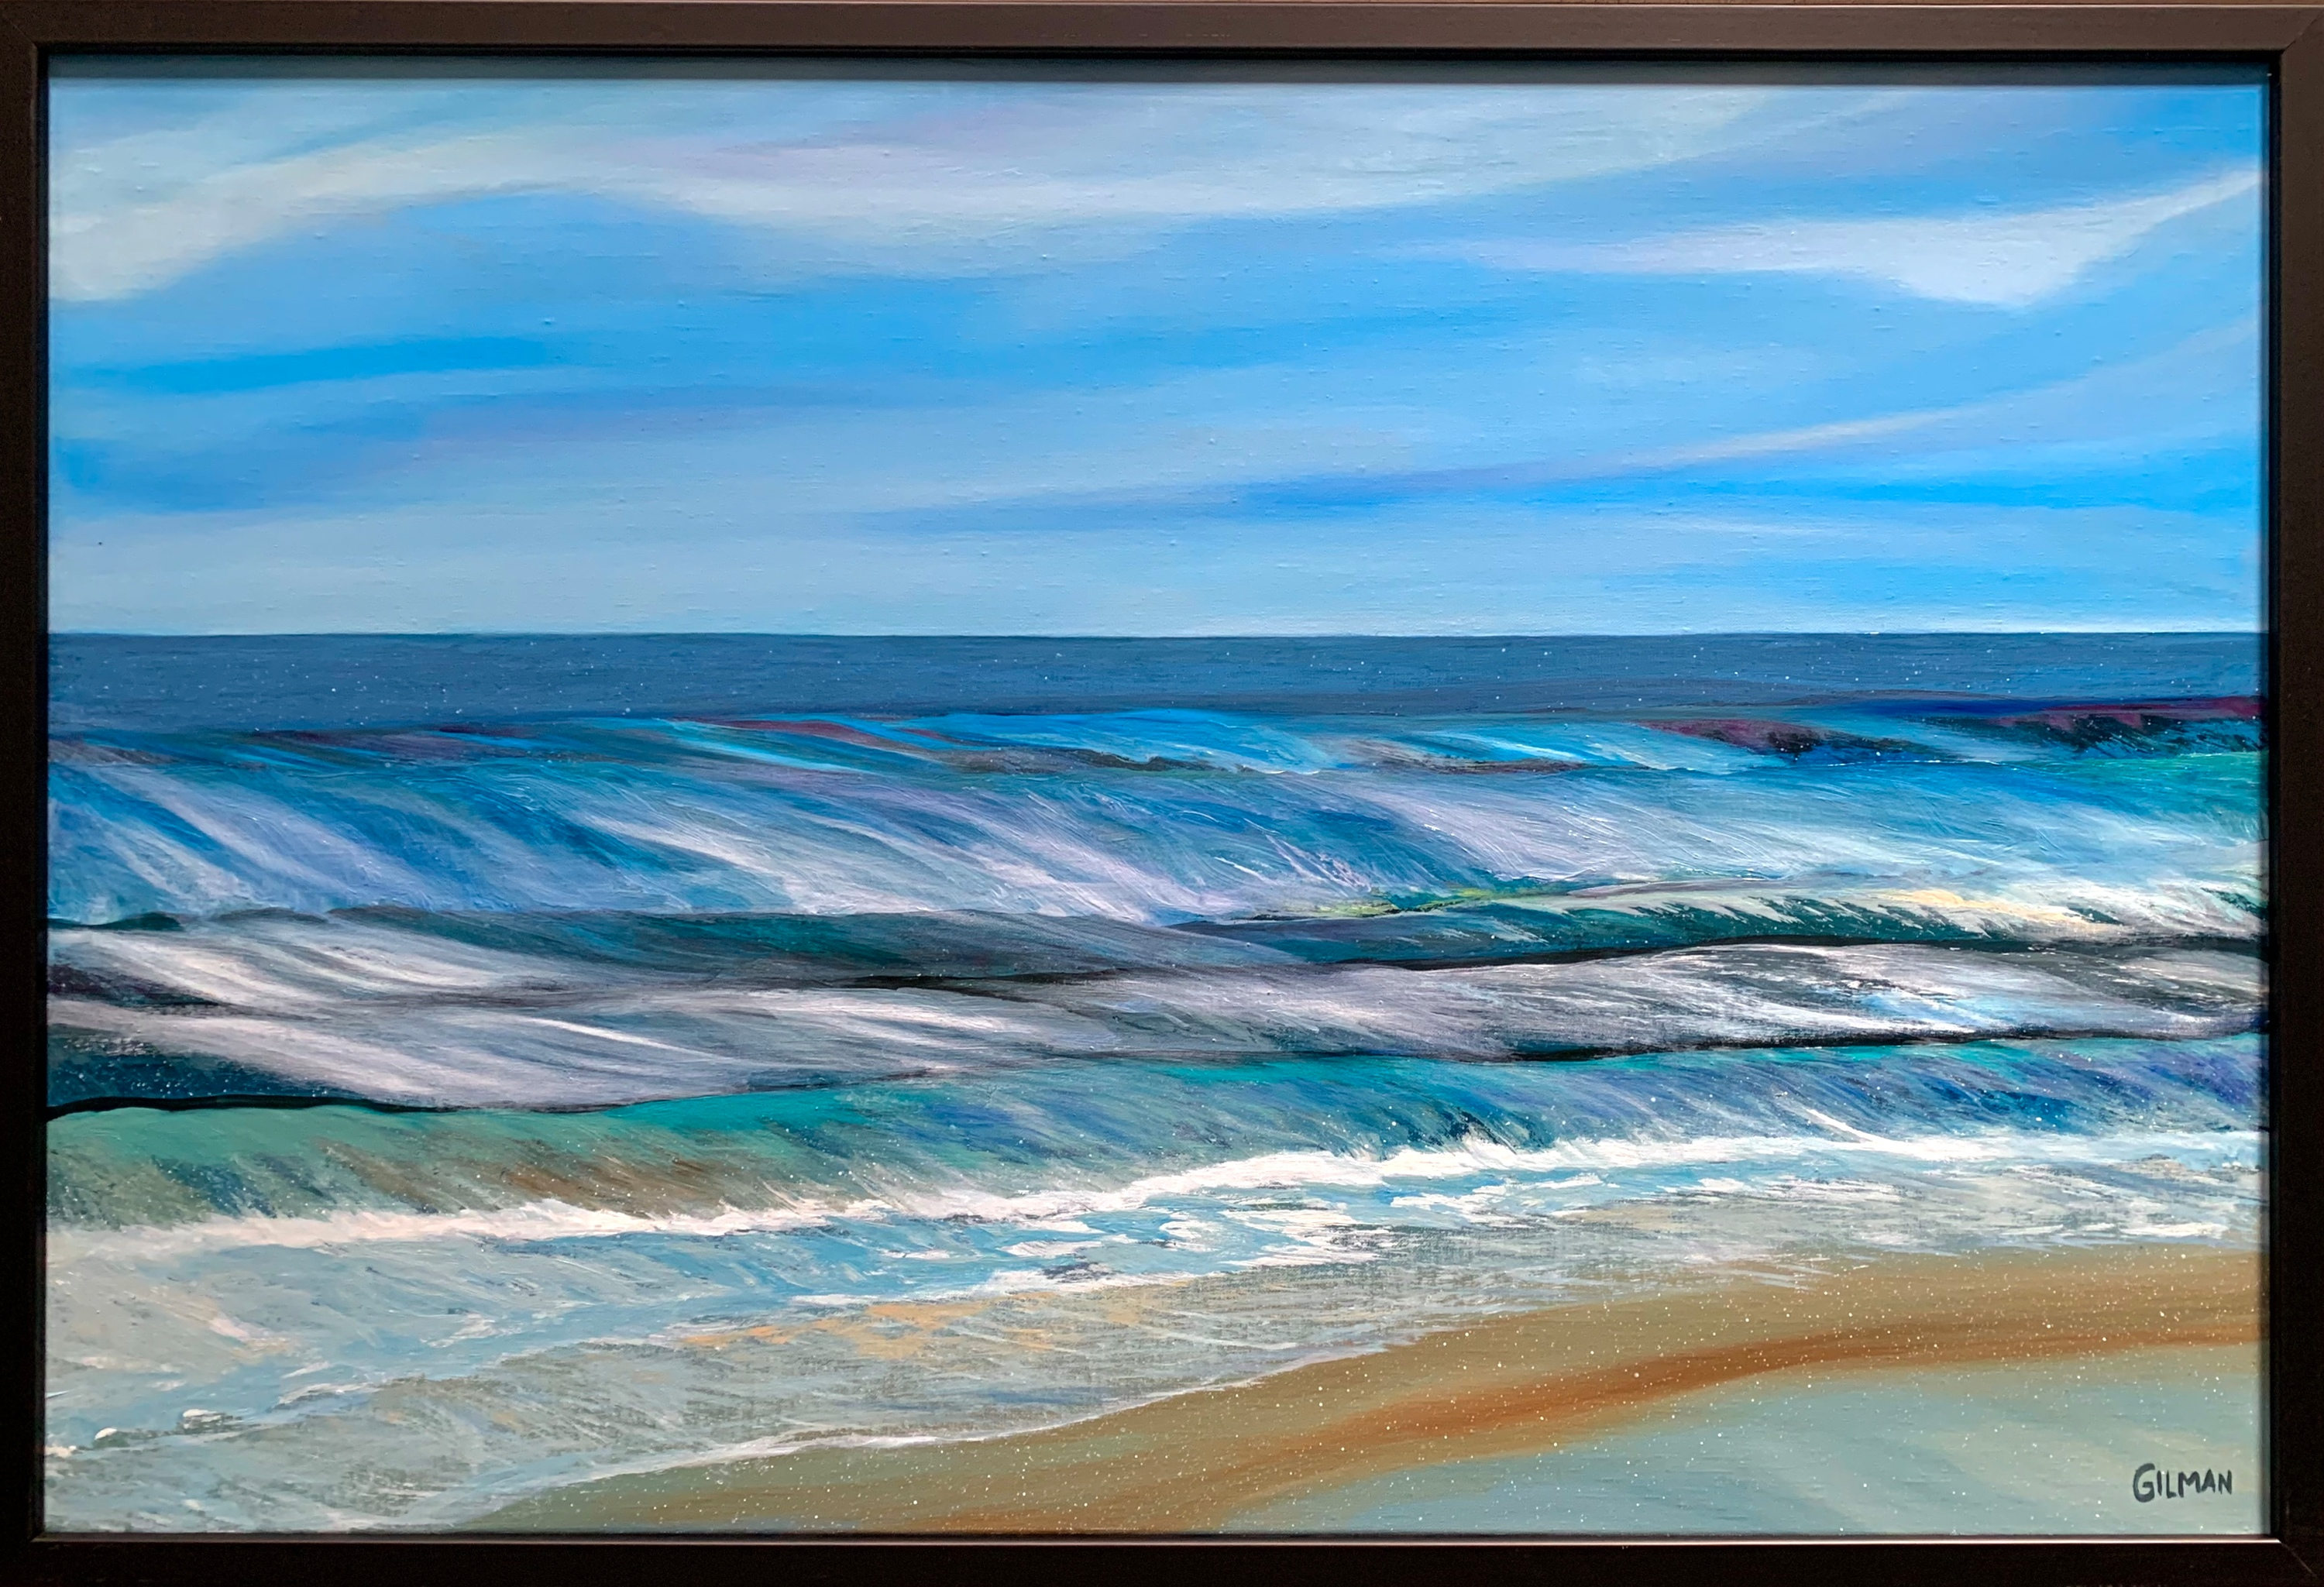 The ocean speaks framed gtzi5m